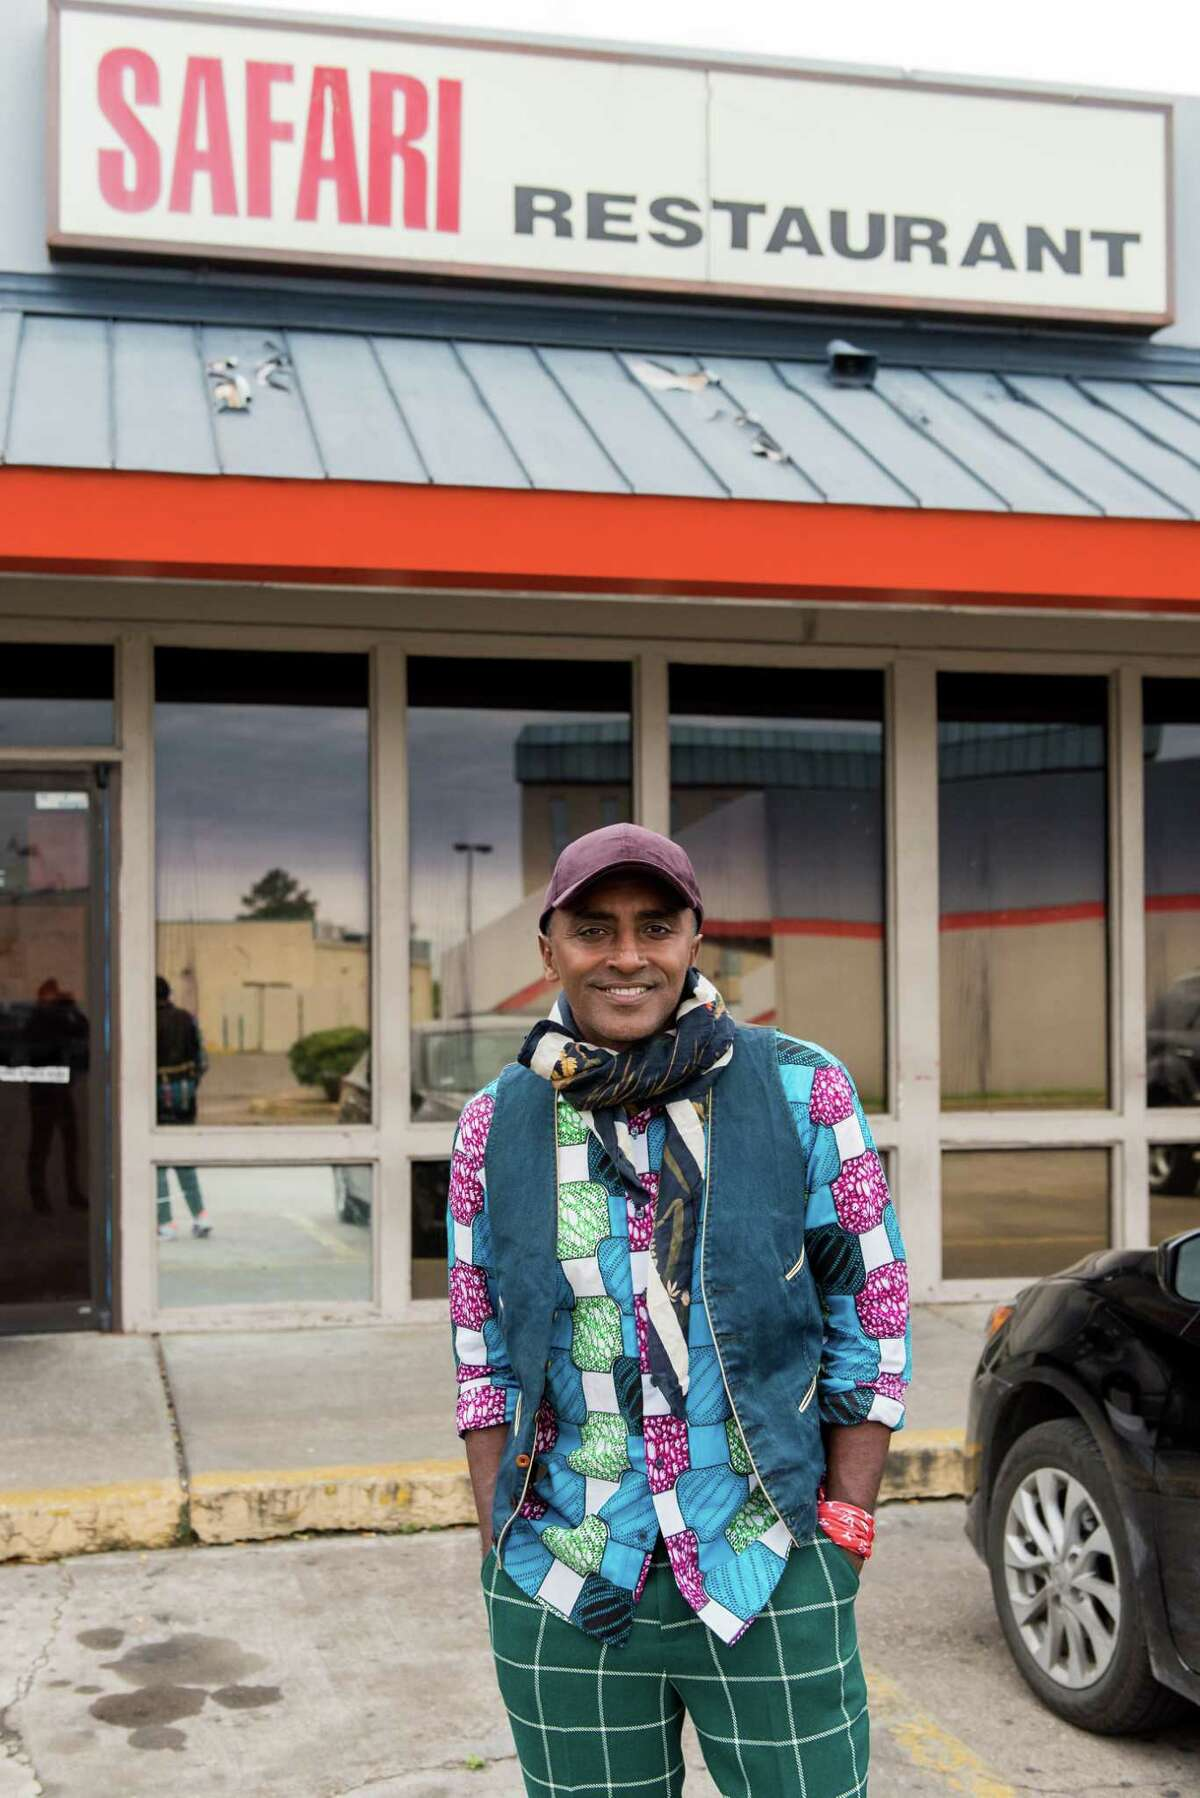 Chef Marcus Samuelsson at West African restaurant Safari in Houston. Houston's West African foods and culture are featured in an episode of Season 2 of